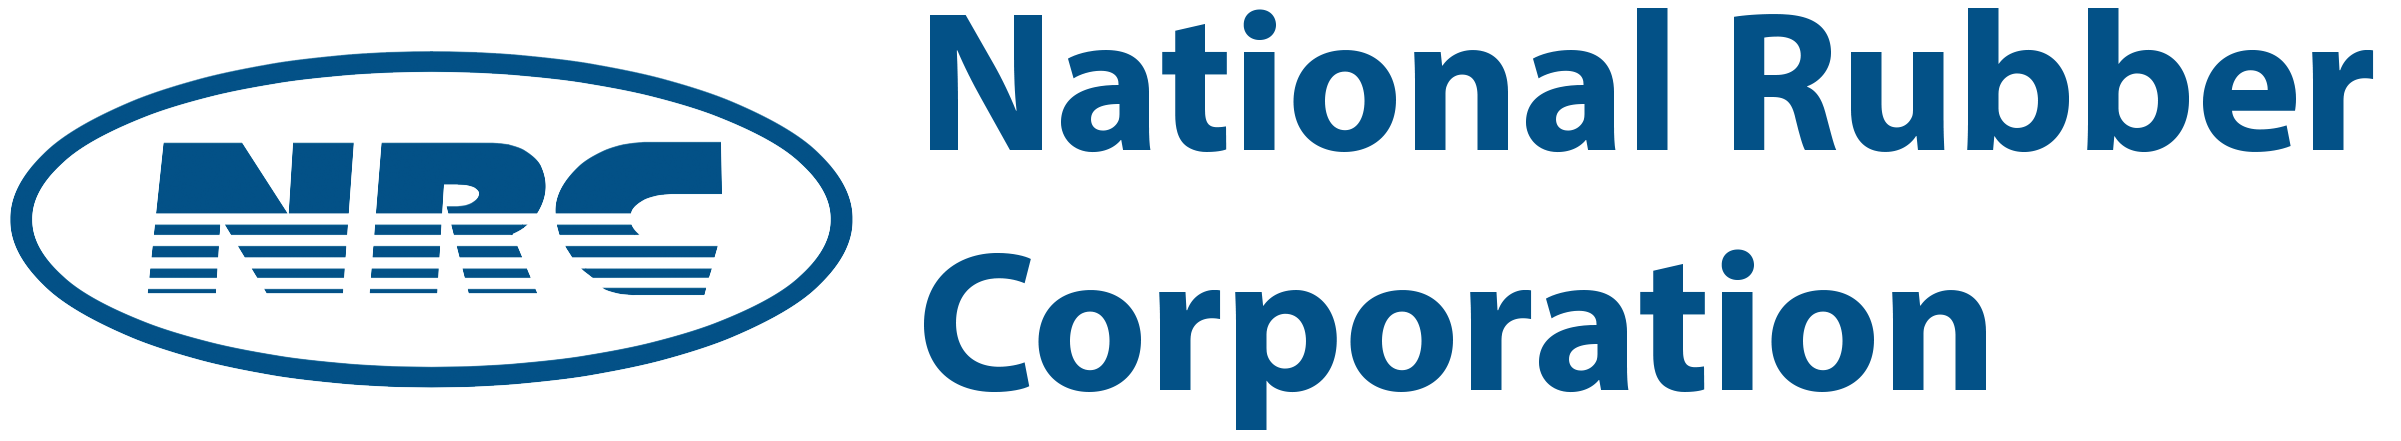 National Rubber Corporation